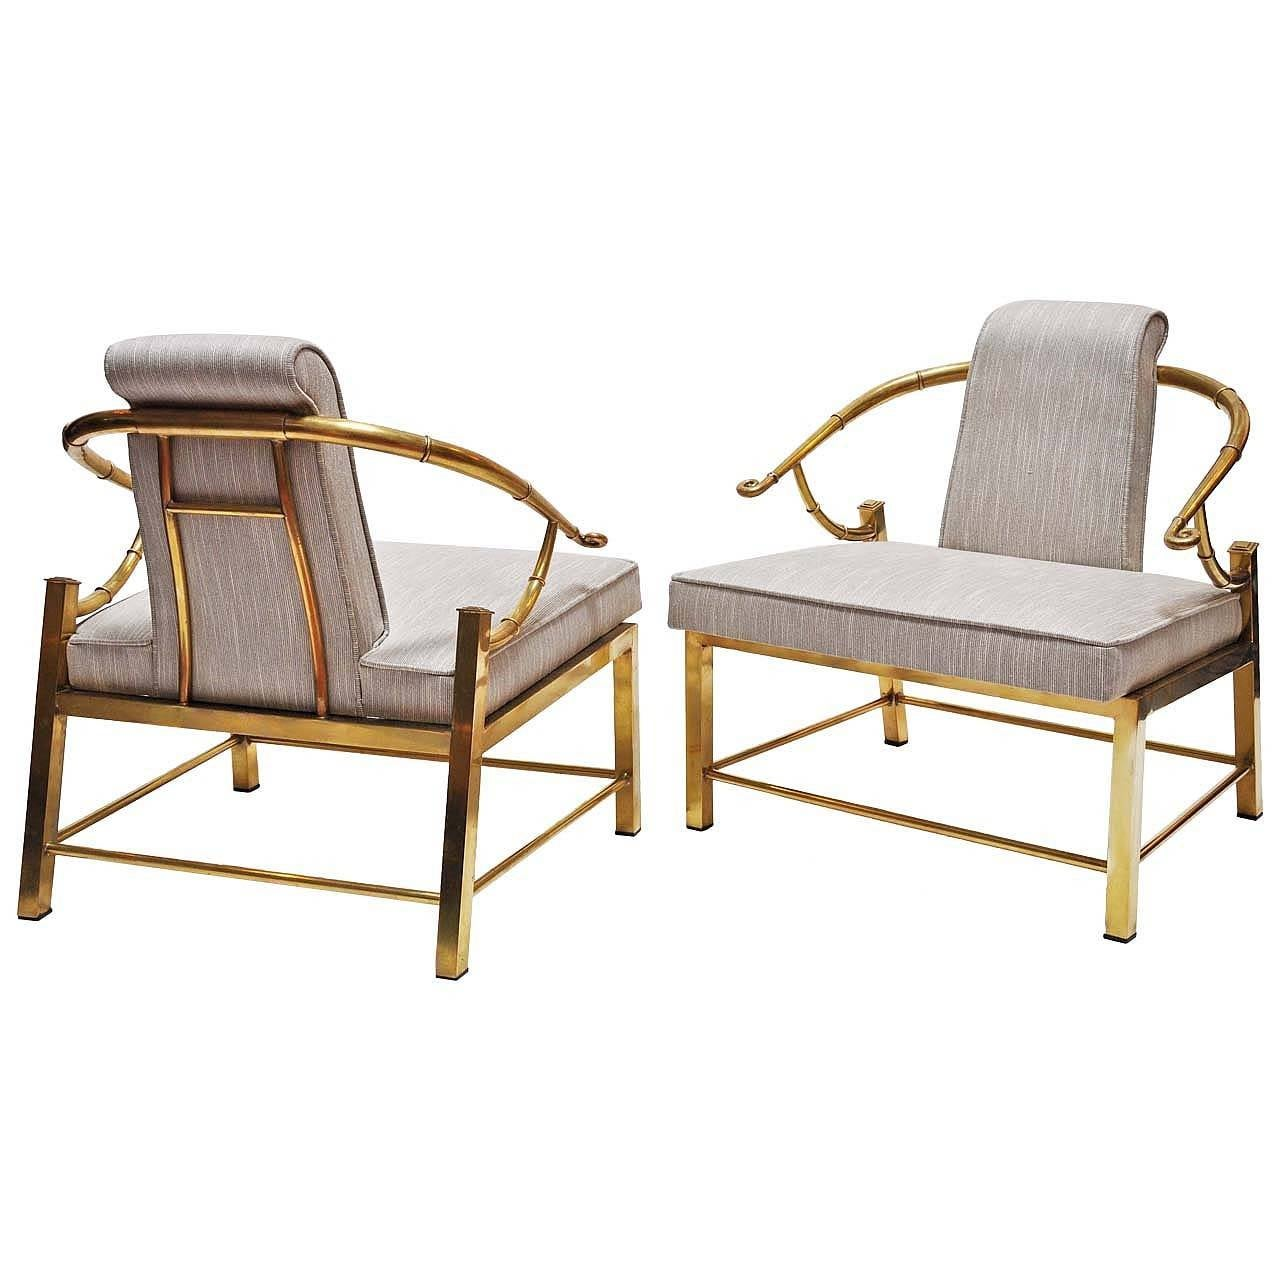 Pair of Mastercraft Chairs, Brass, Upholstery